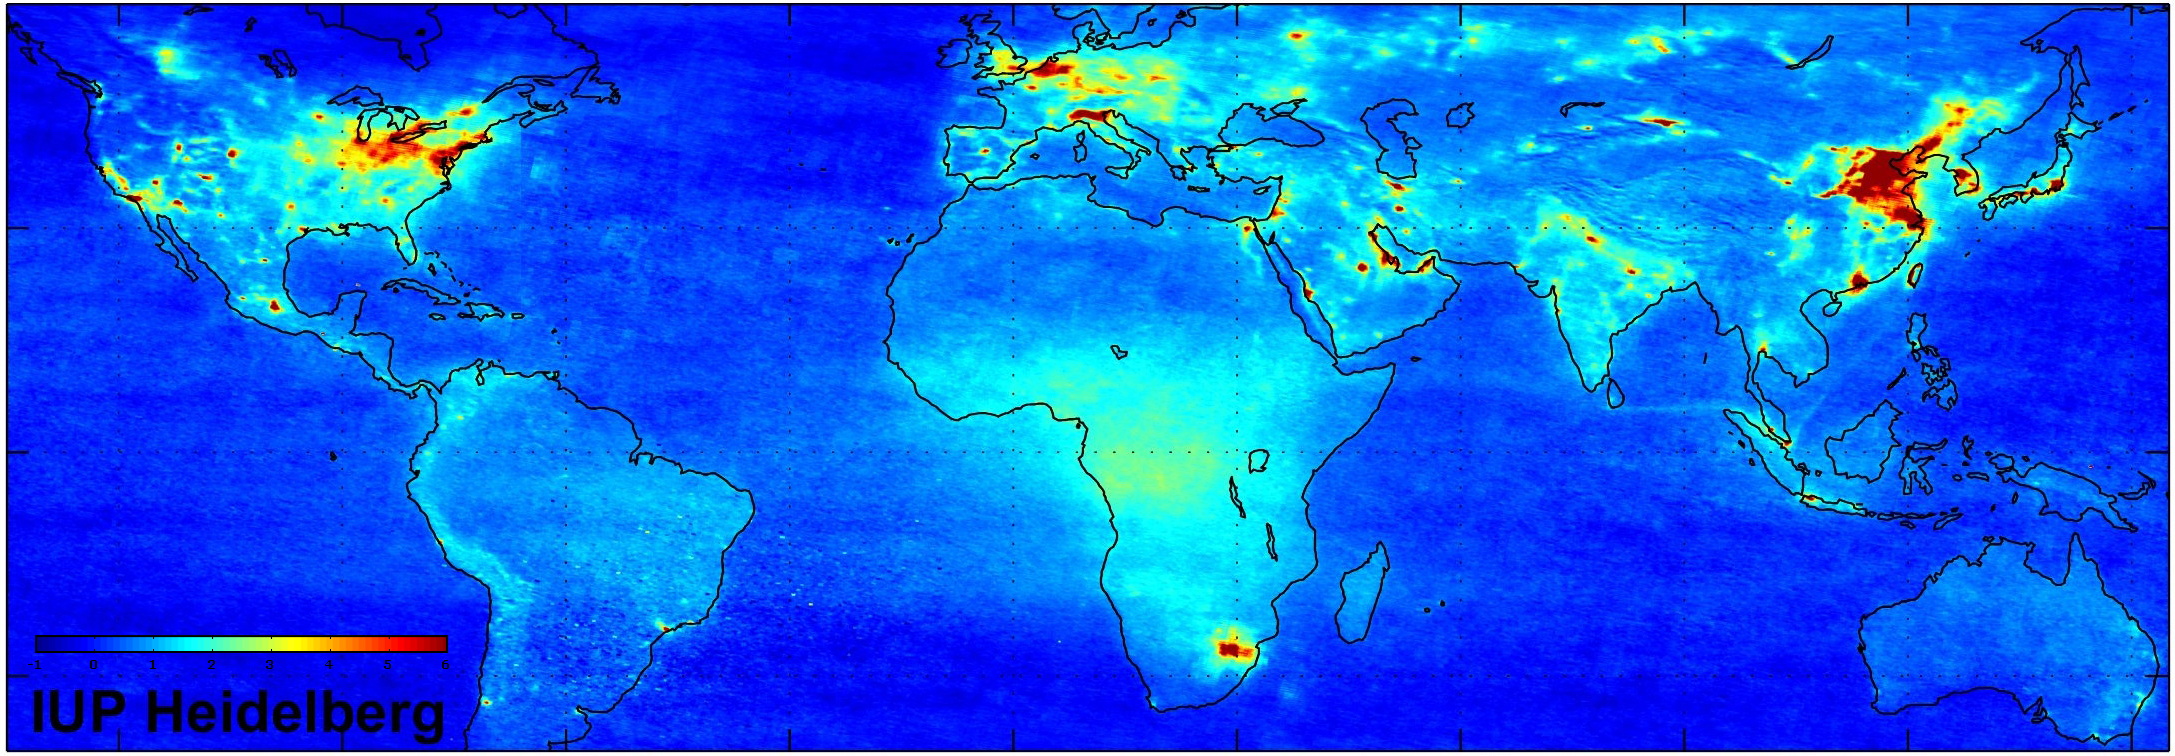 Space In Images Global Nitrogen Dioxide Pollution - Us pollution map